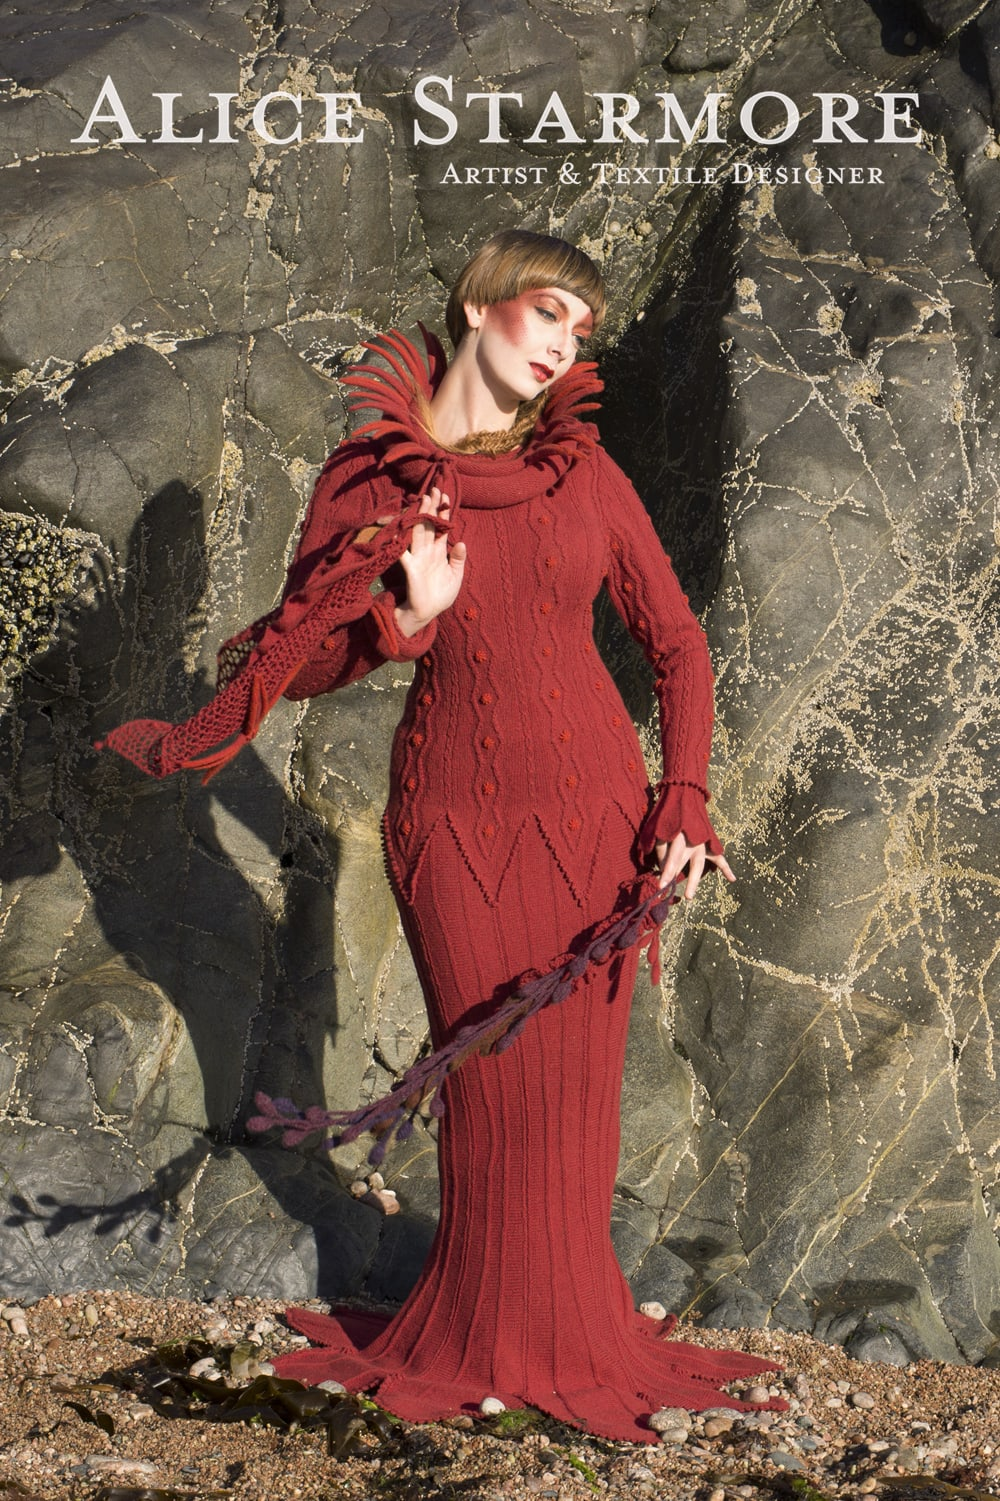 Hand knitwear design by Alice Starmore for Virtual Yarns